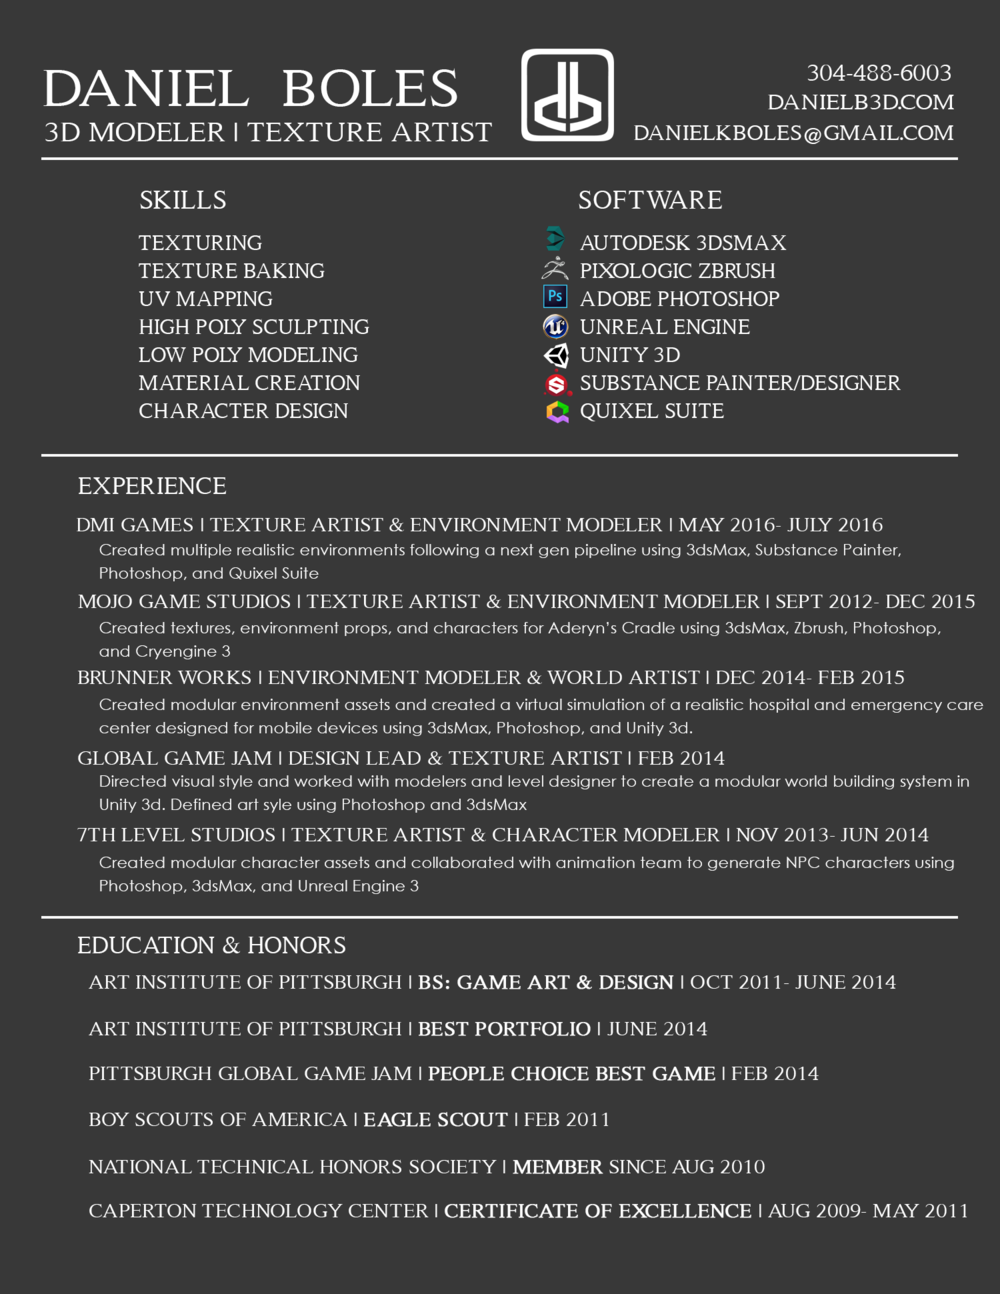 Artist Cv Tips On How To Write The Perfect One Cv Politan